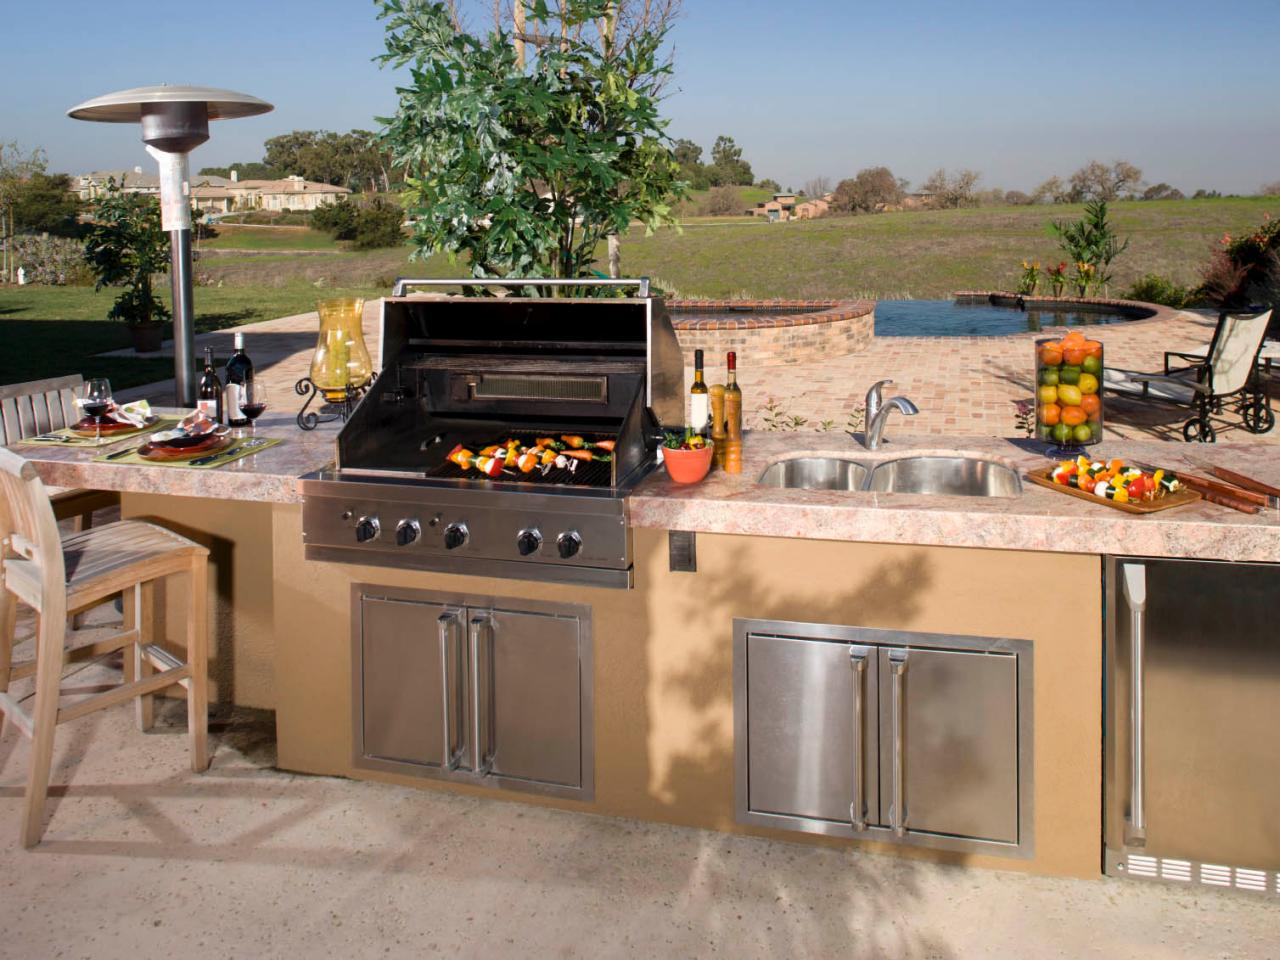 Outdoor Kitchen Design Ideas: Pictures, Tips & Expert Advice | HGTV